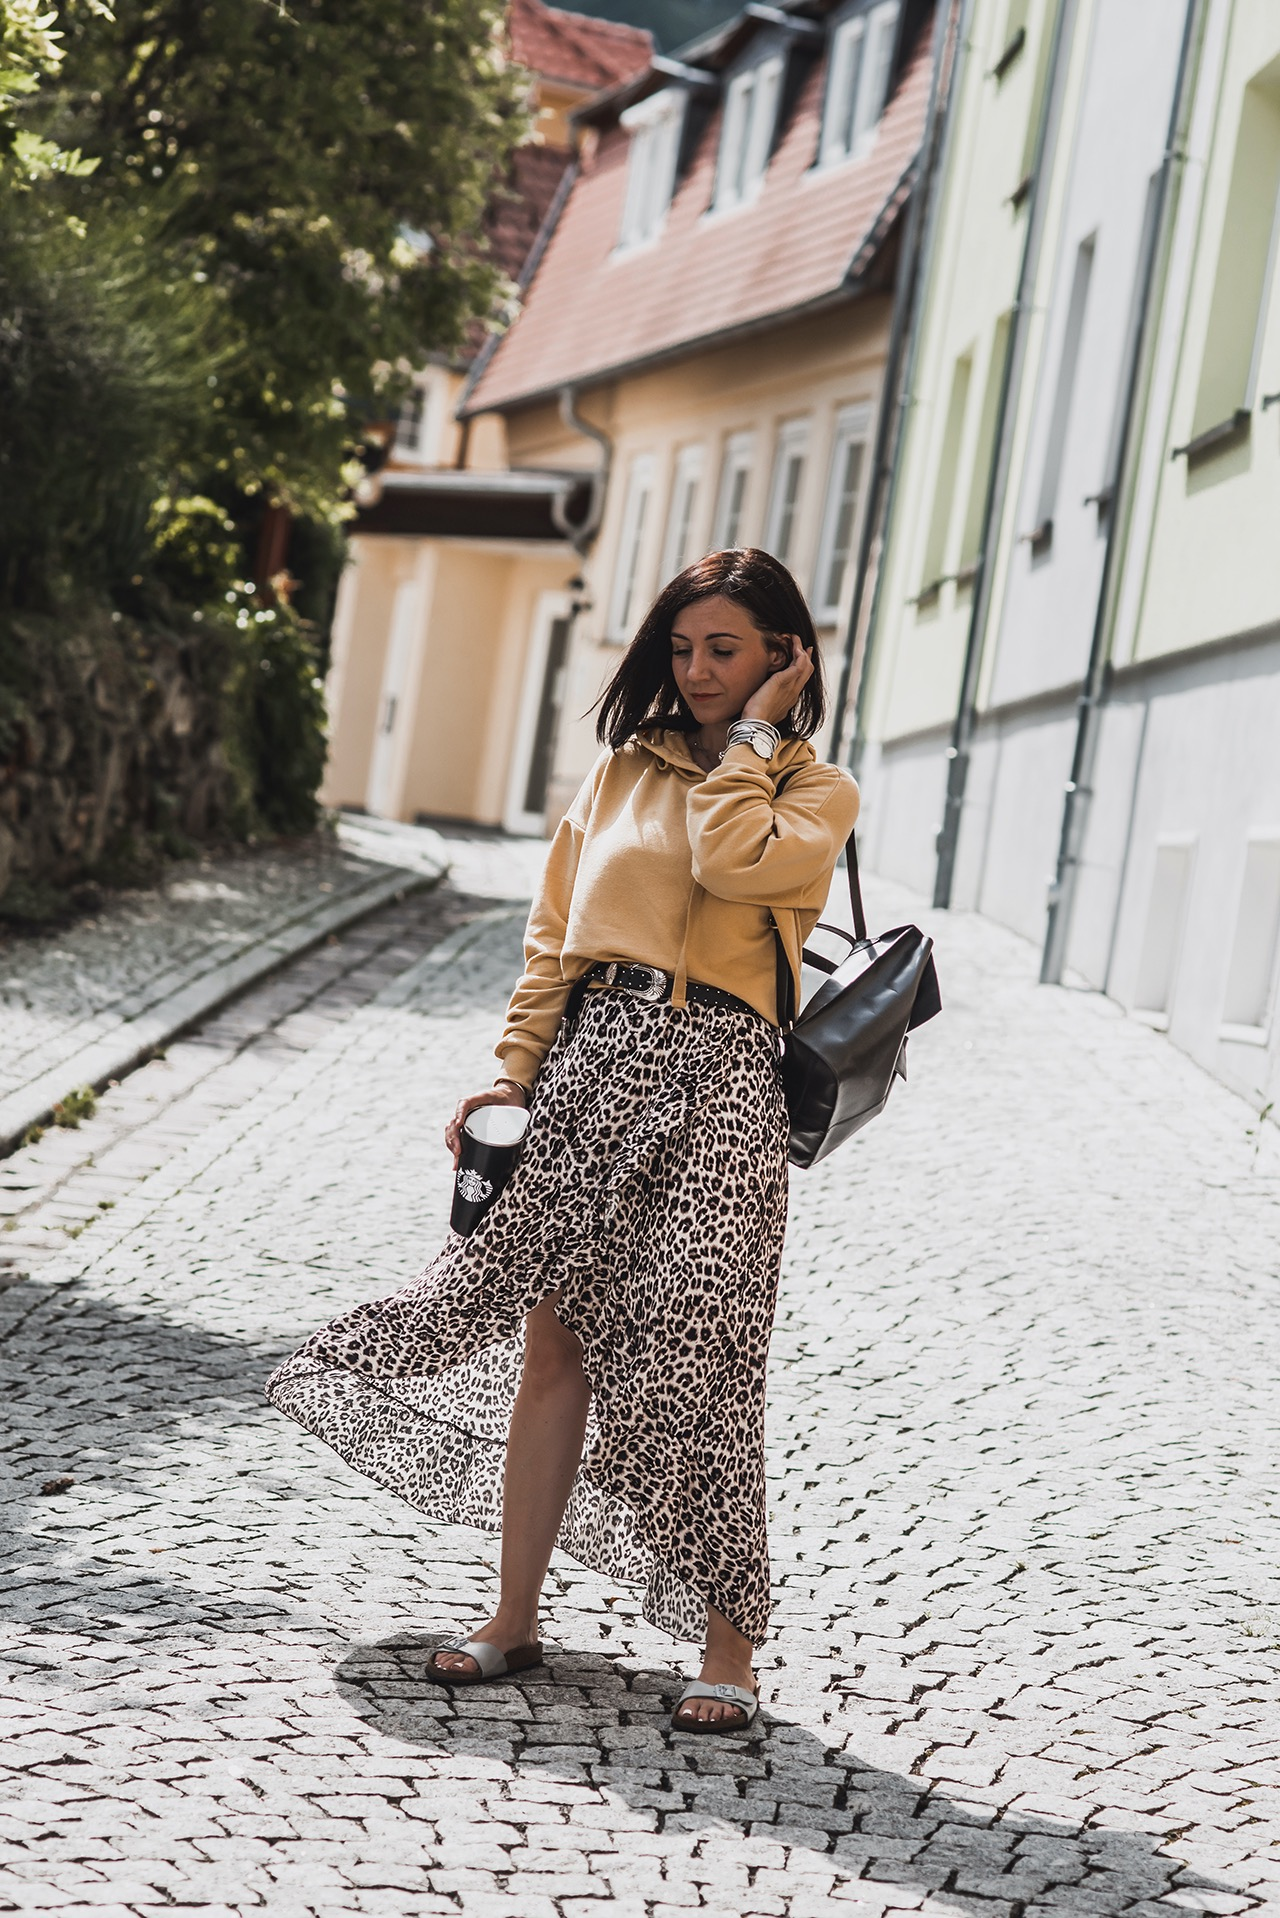 This is how we wear the leopard print - outfits & shopping tips Julie's dress code fashion & lifestyle blog